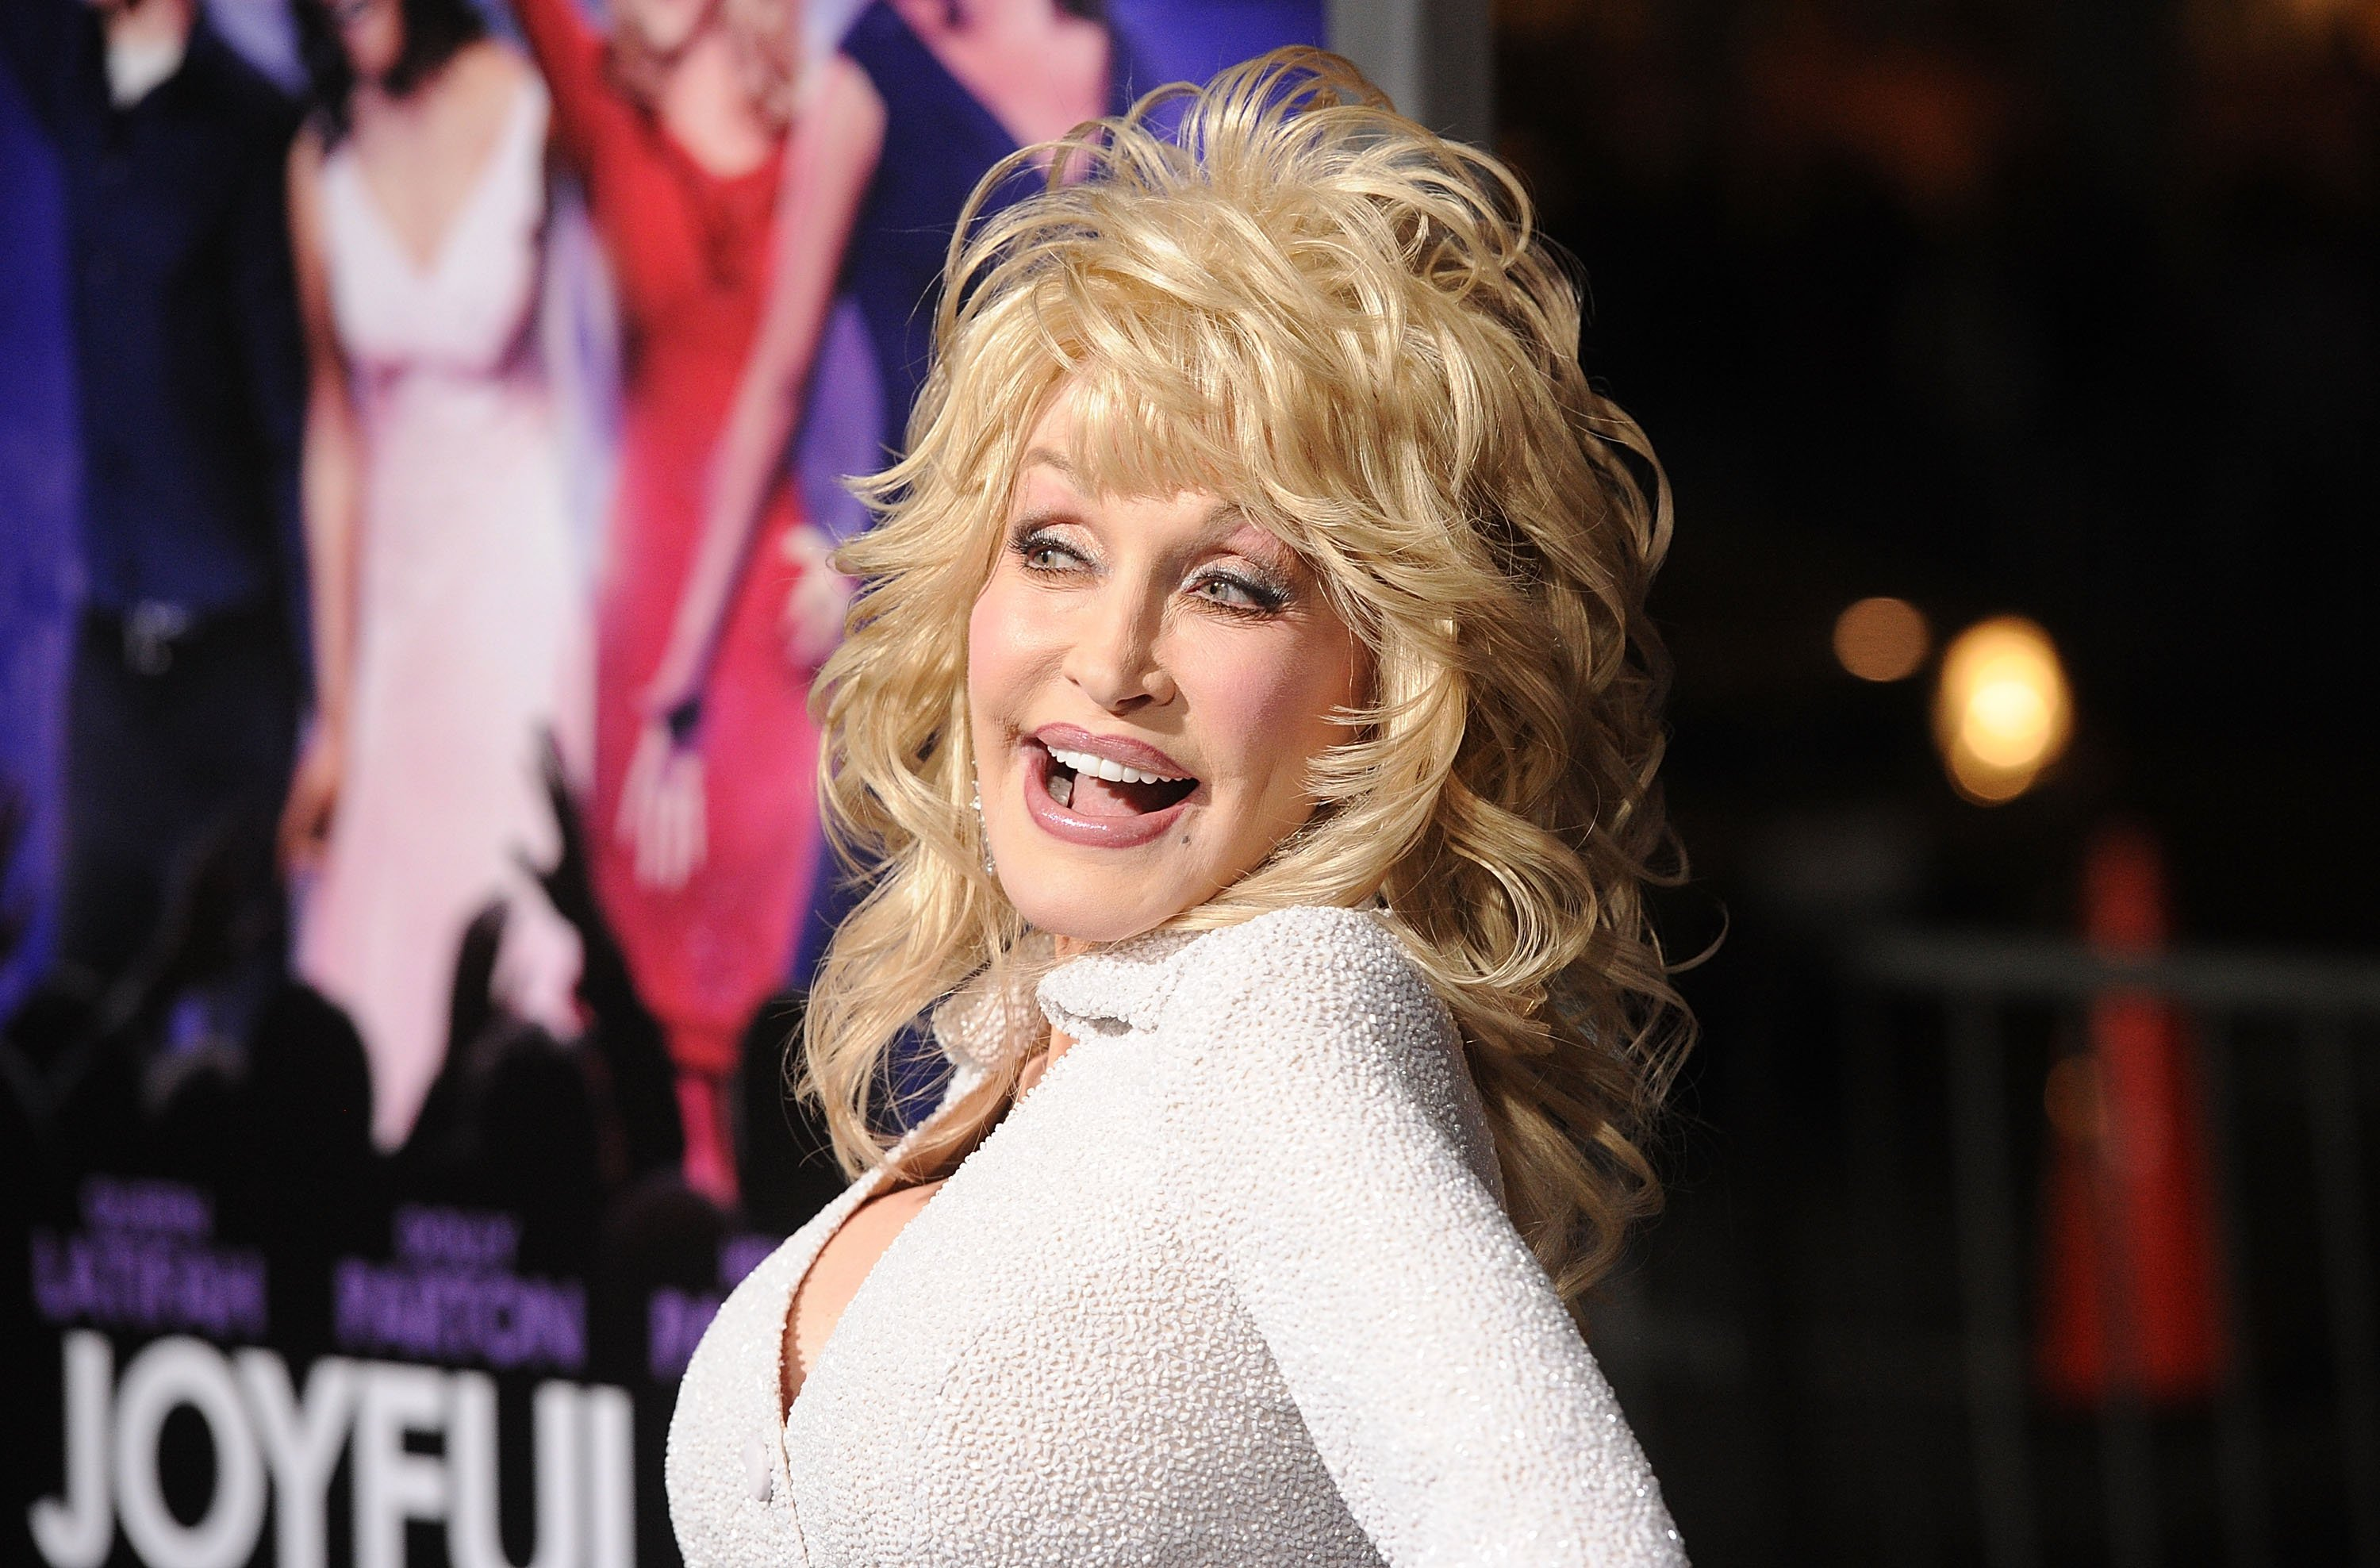 """Dolly Parton attends the premiere of """"Joyful Noise"""" in Hollywood, California on January 9, 2012 